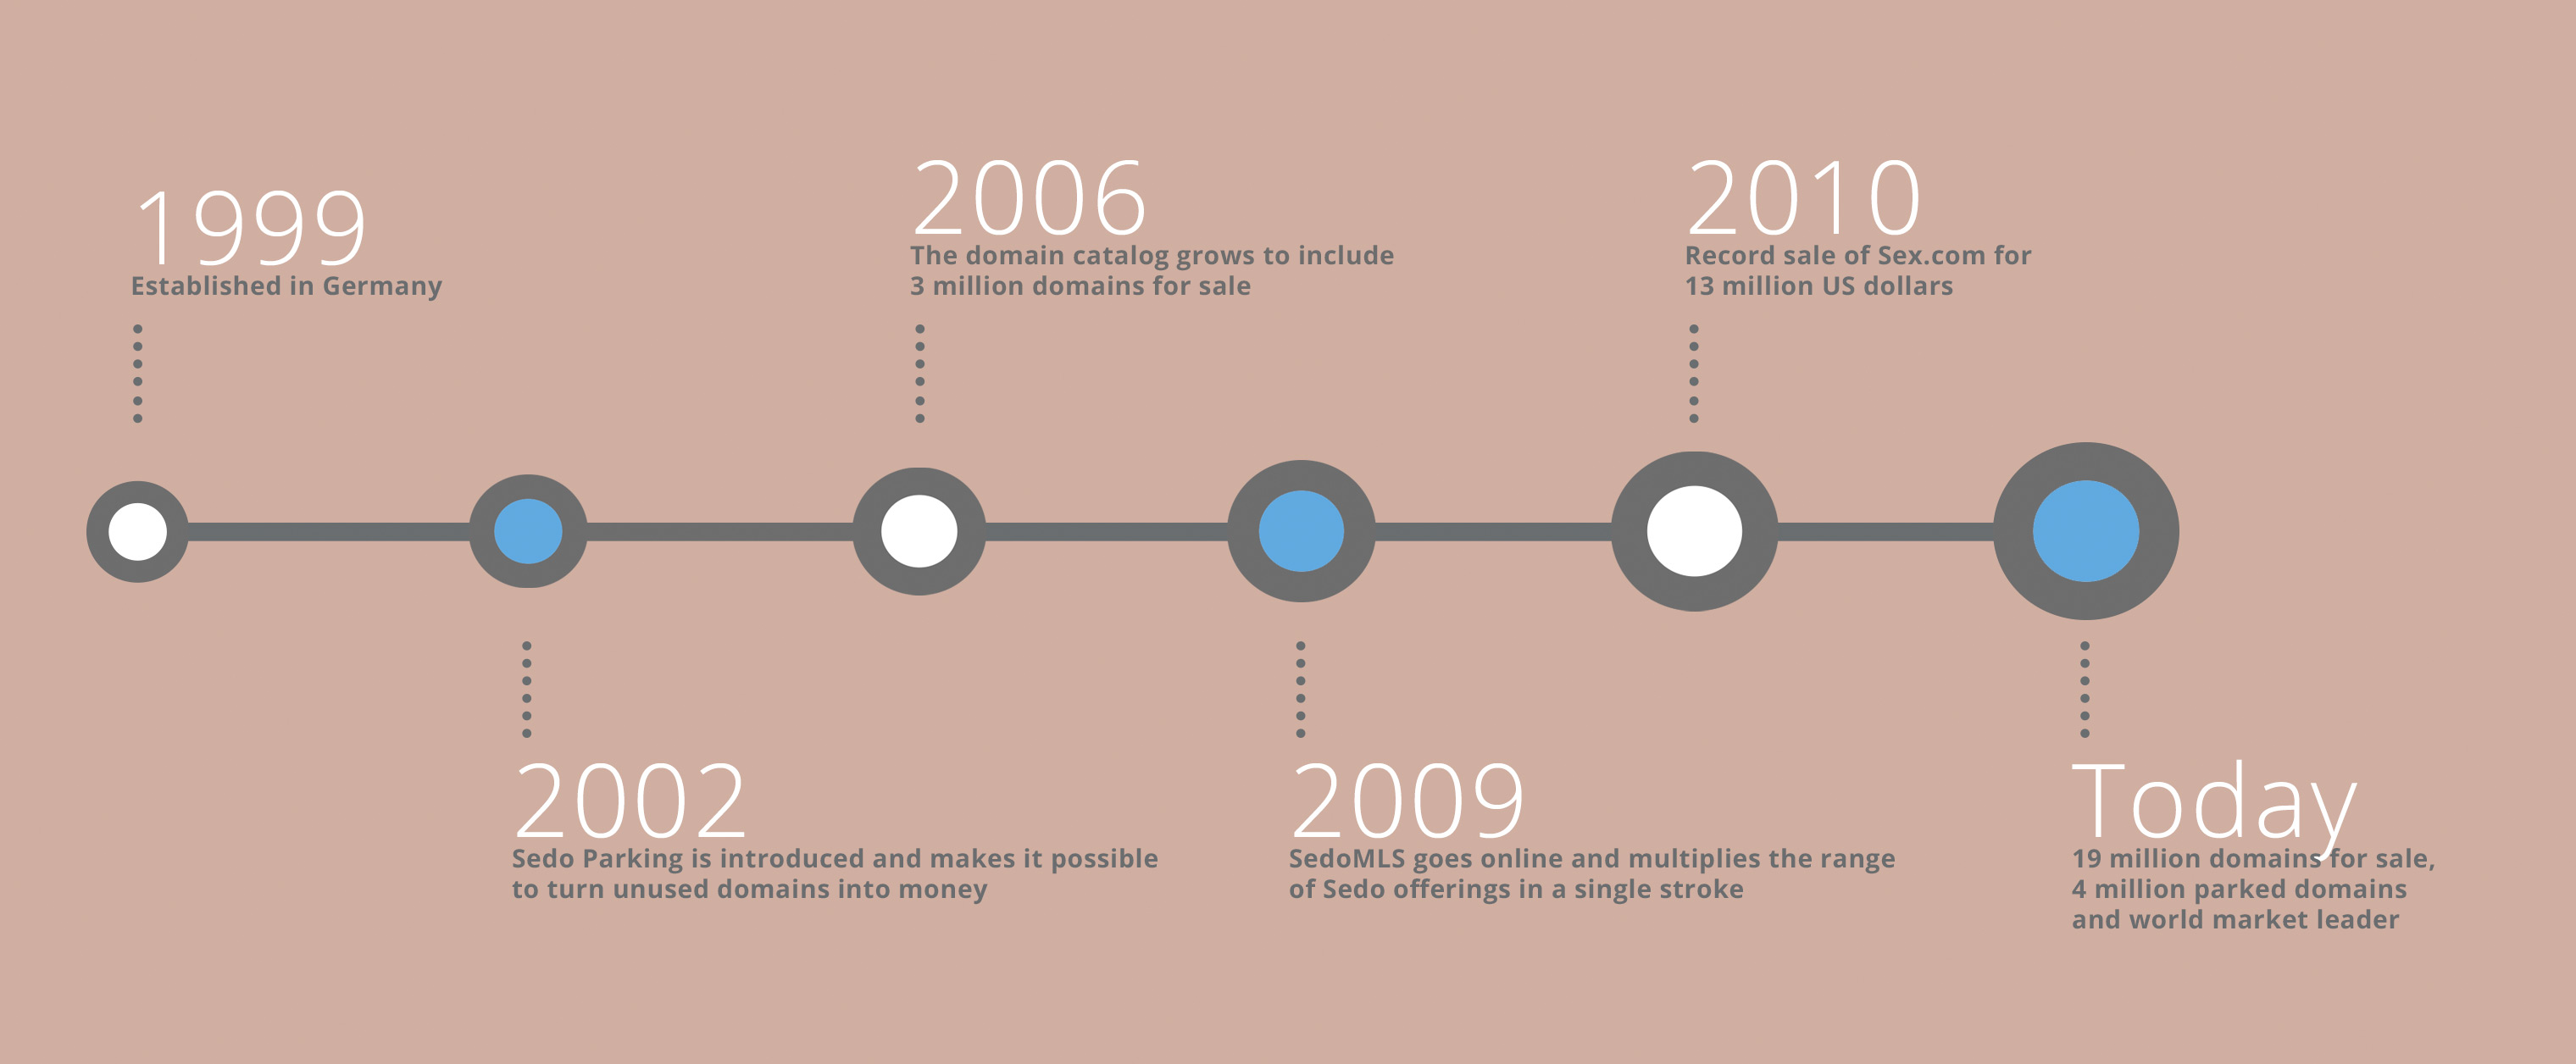 Sedos Timeline 1999 - Today